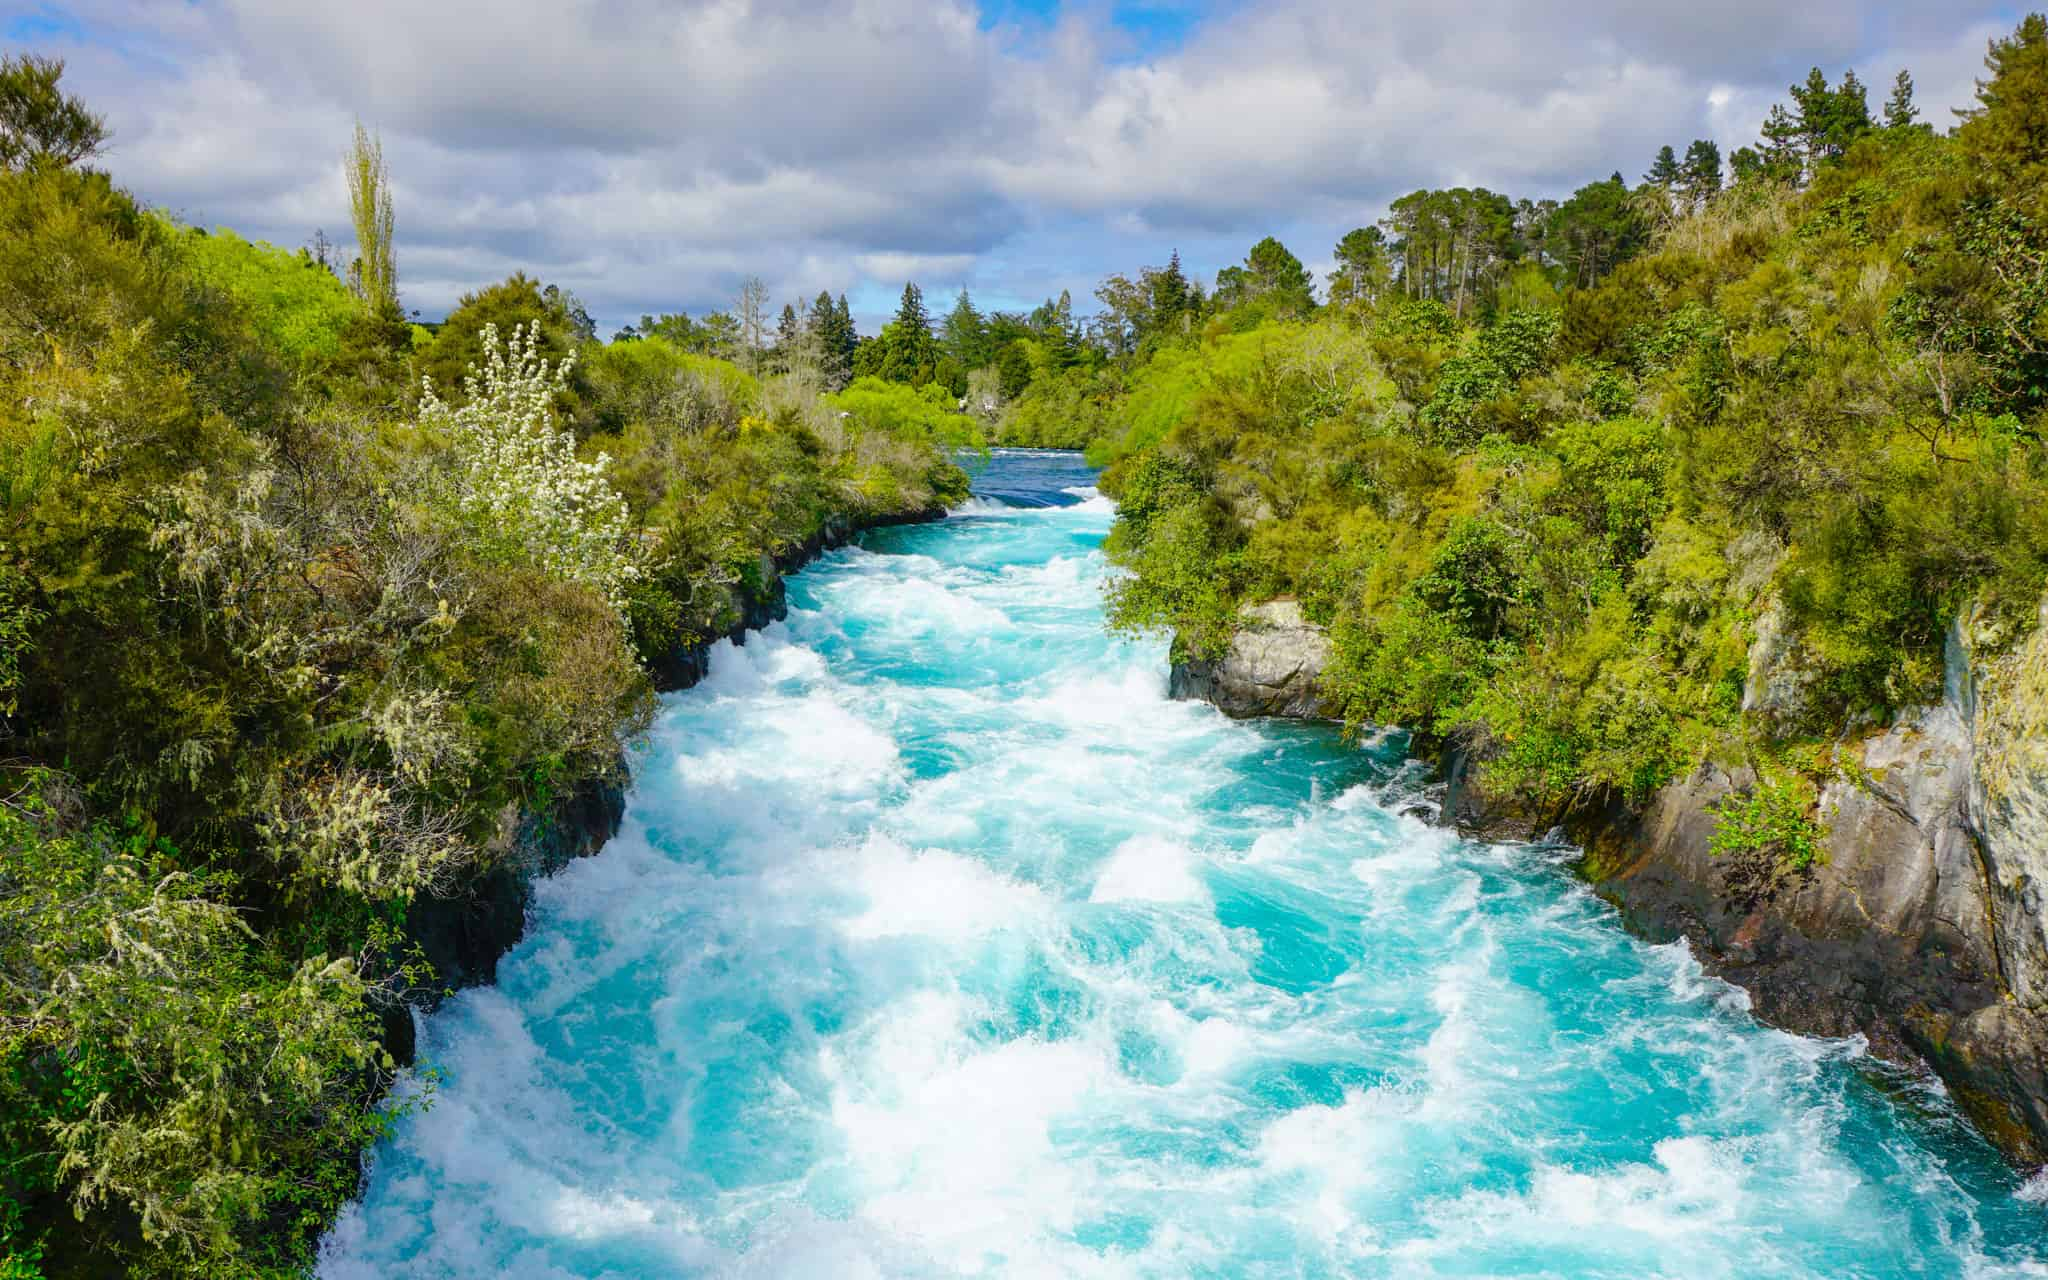 Stay-in-Taupo-Accommodation-Bed-and-Breakfast-in-Taupo-Waikato-New-Zealand-5